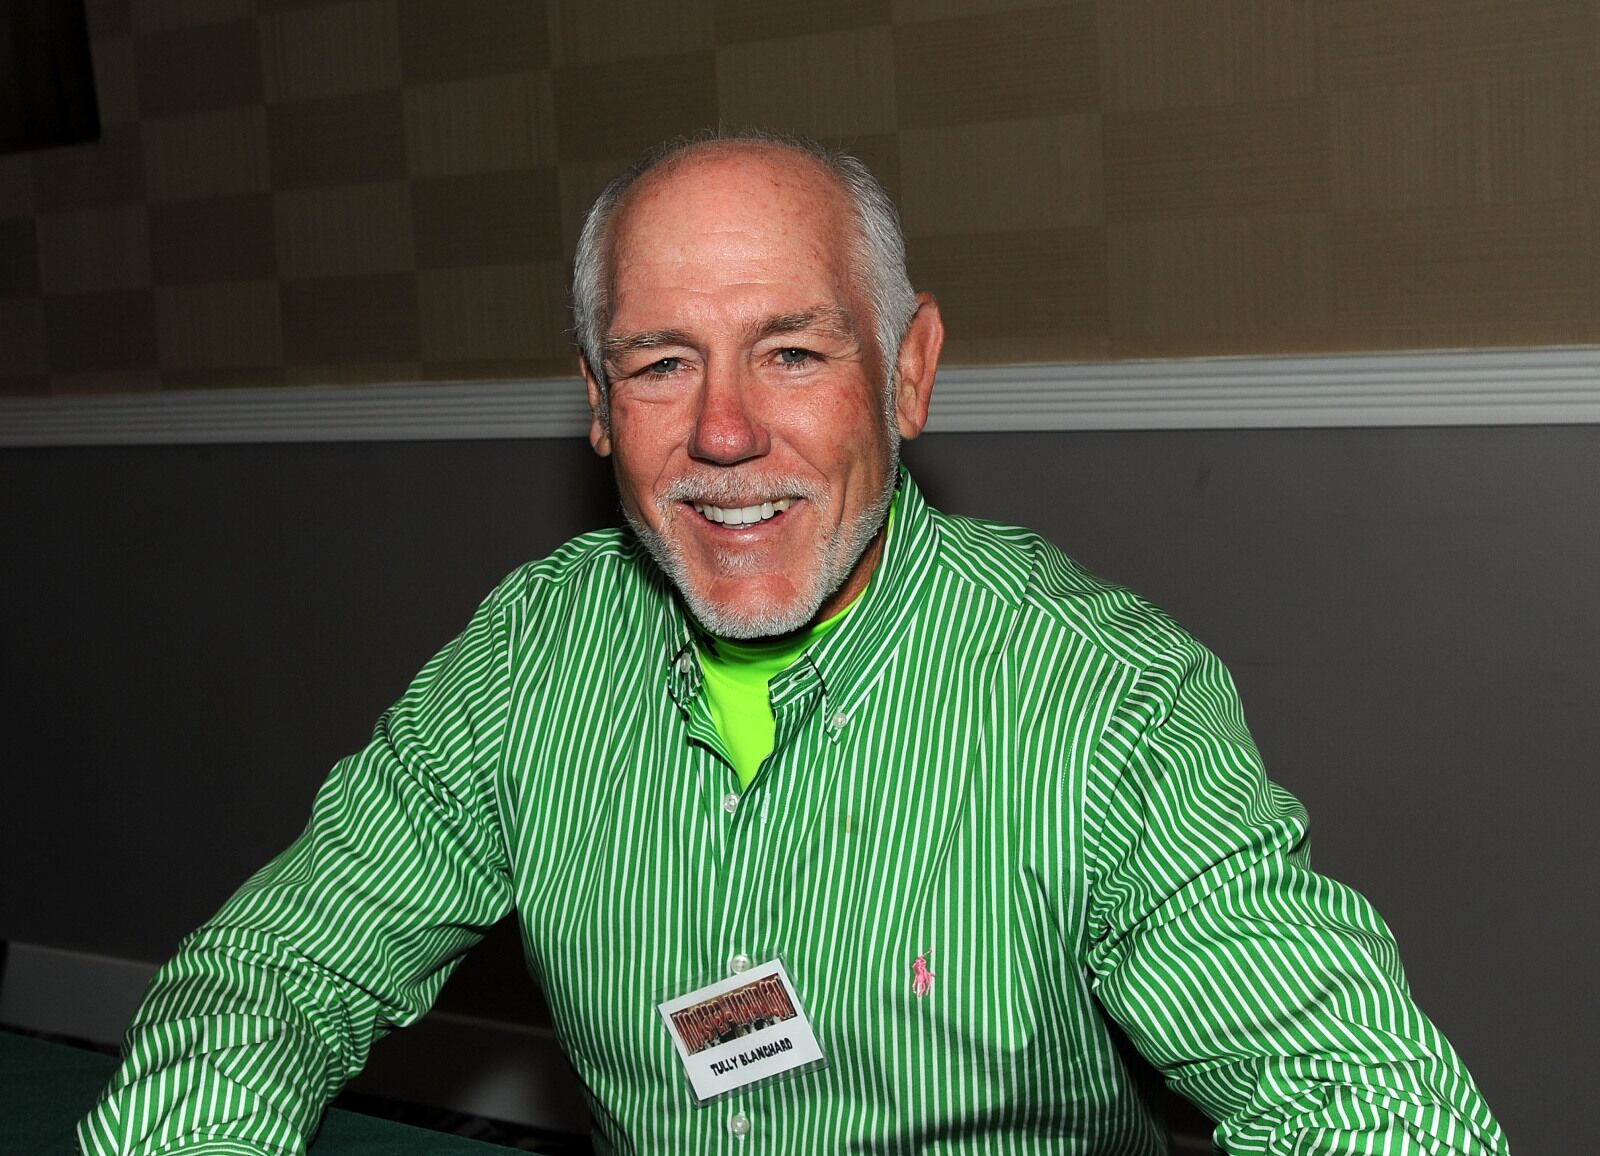 AEW: Shawn Spears is getting Tully Blanchard as his manager